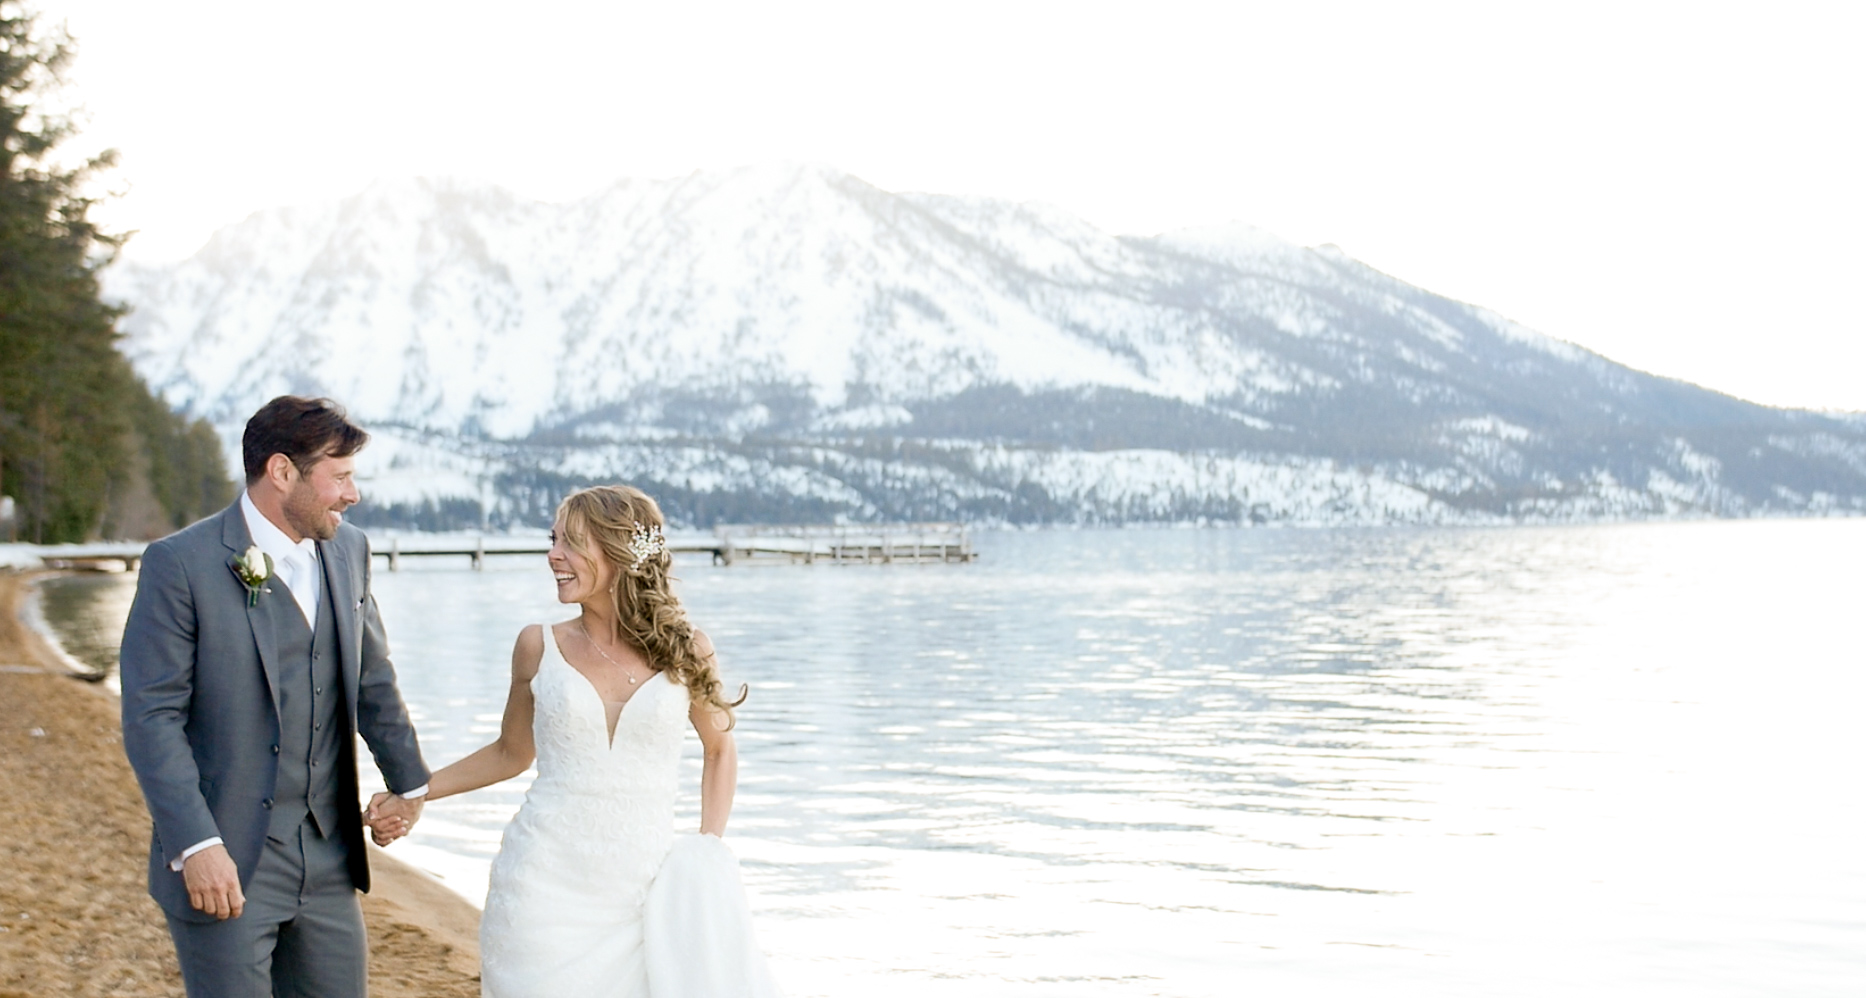 Brittany + Jon | South Lake Tahoe, California | Emerald Bay